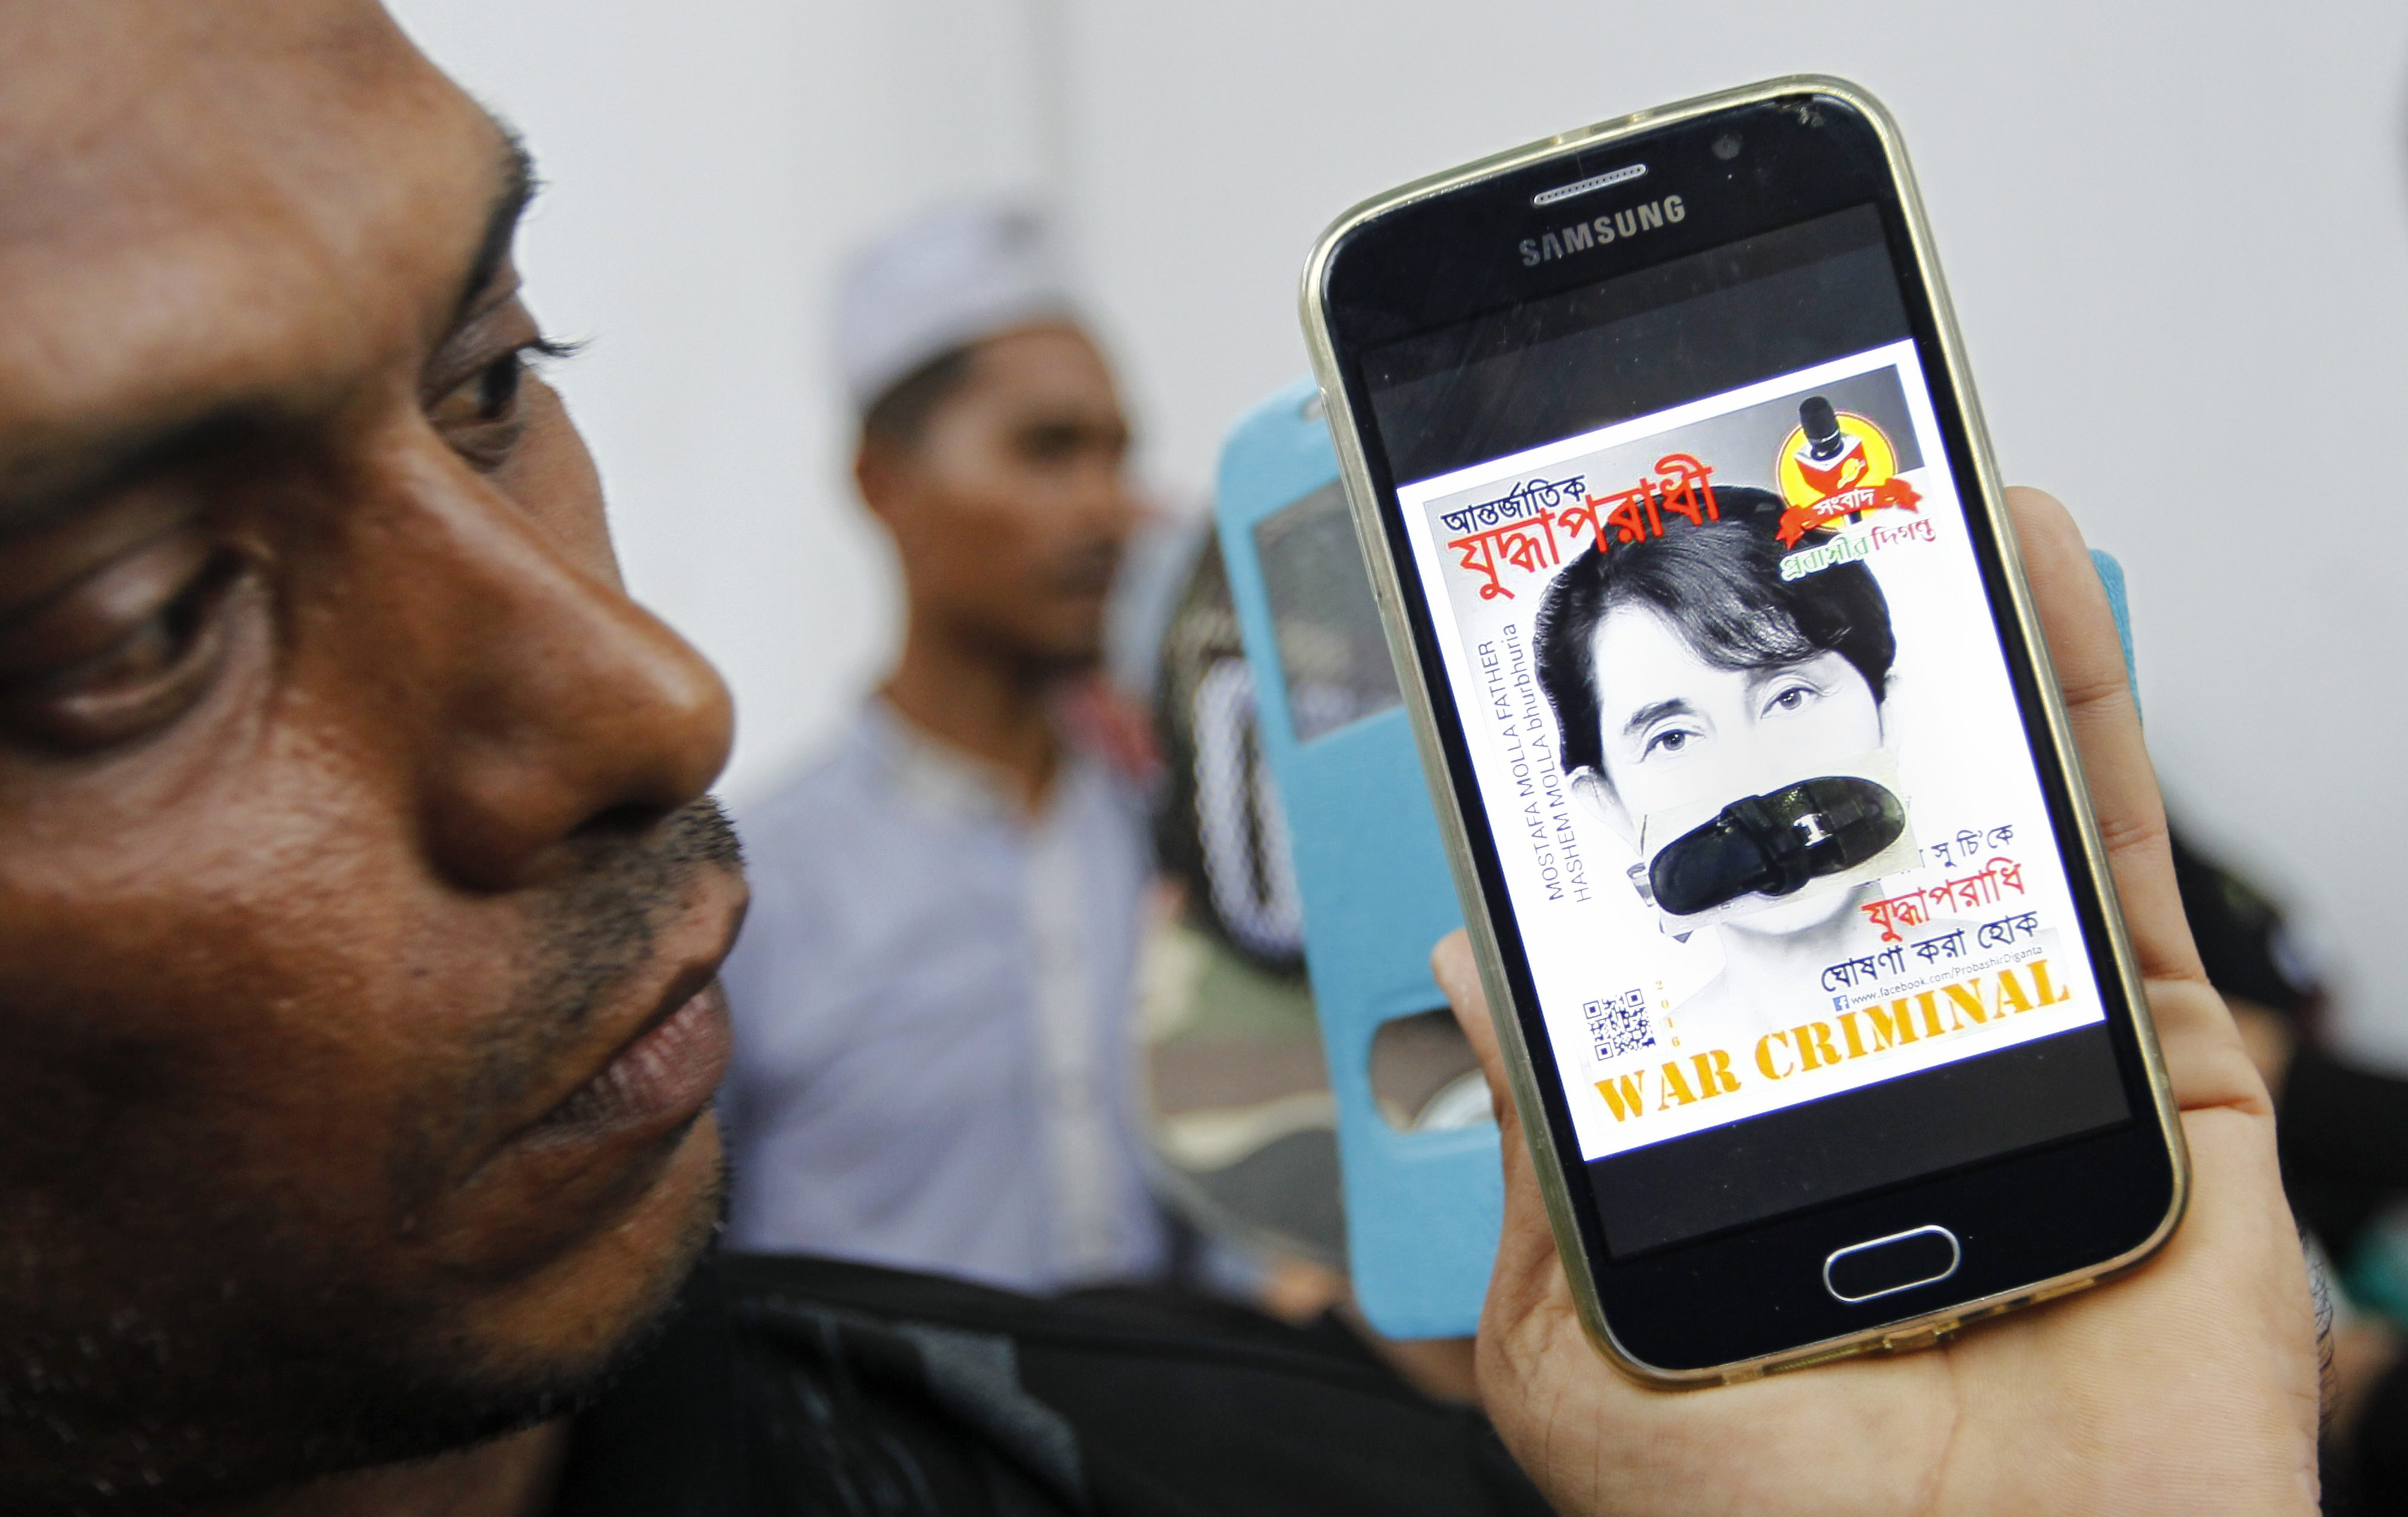 A Rohingya migrant shows a mobile phone displaying a photograph of Myanmar's State Counsellor and Foreign Minister Aung San Suu Kyi with her mouth covered with a flip flop and a banner reading 'War Criminal' during a protest against Myanmar's recent violence on Rohingya people, outside the Myanmar embassy in Bangkok, Thailand, 25 November 2016.